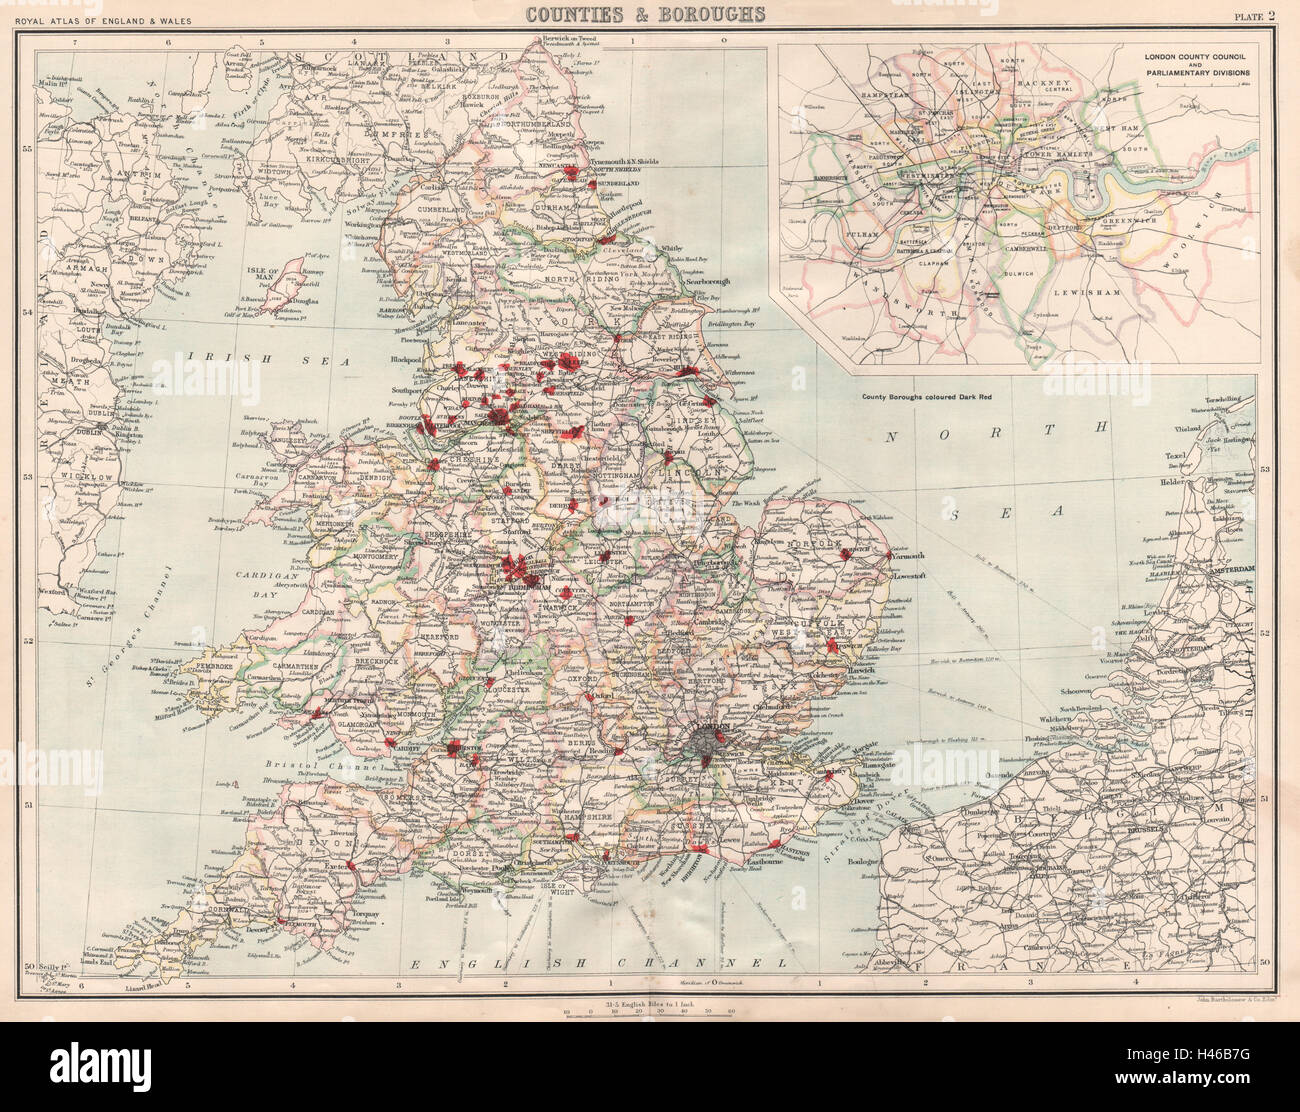 ENGLAND & WALES Counties Boroughs. London CC/Parliamentary Divisions  1898 map Stock Photo